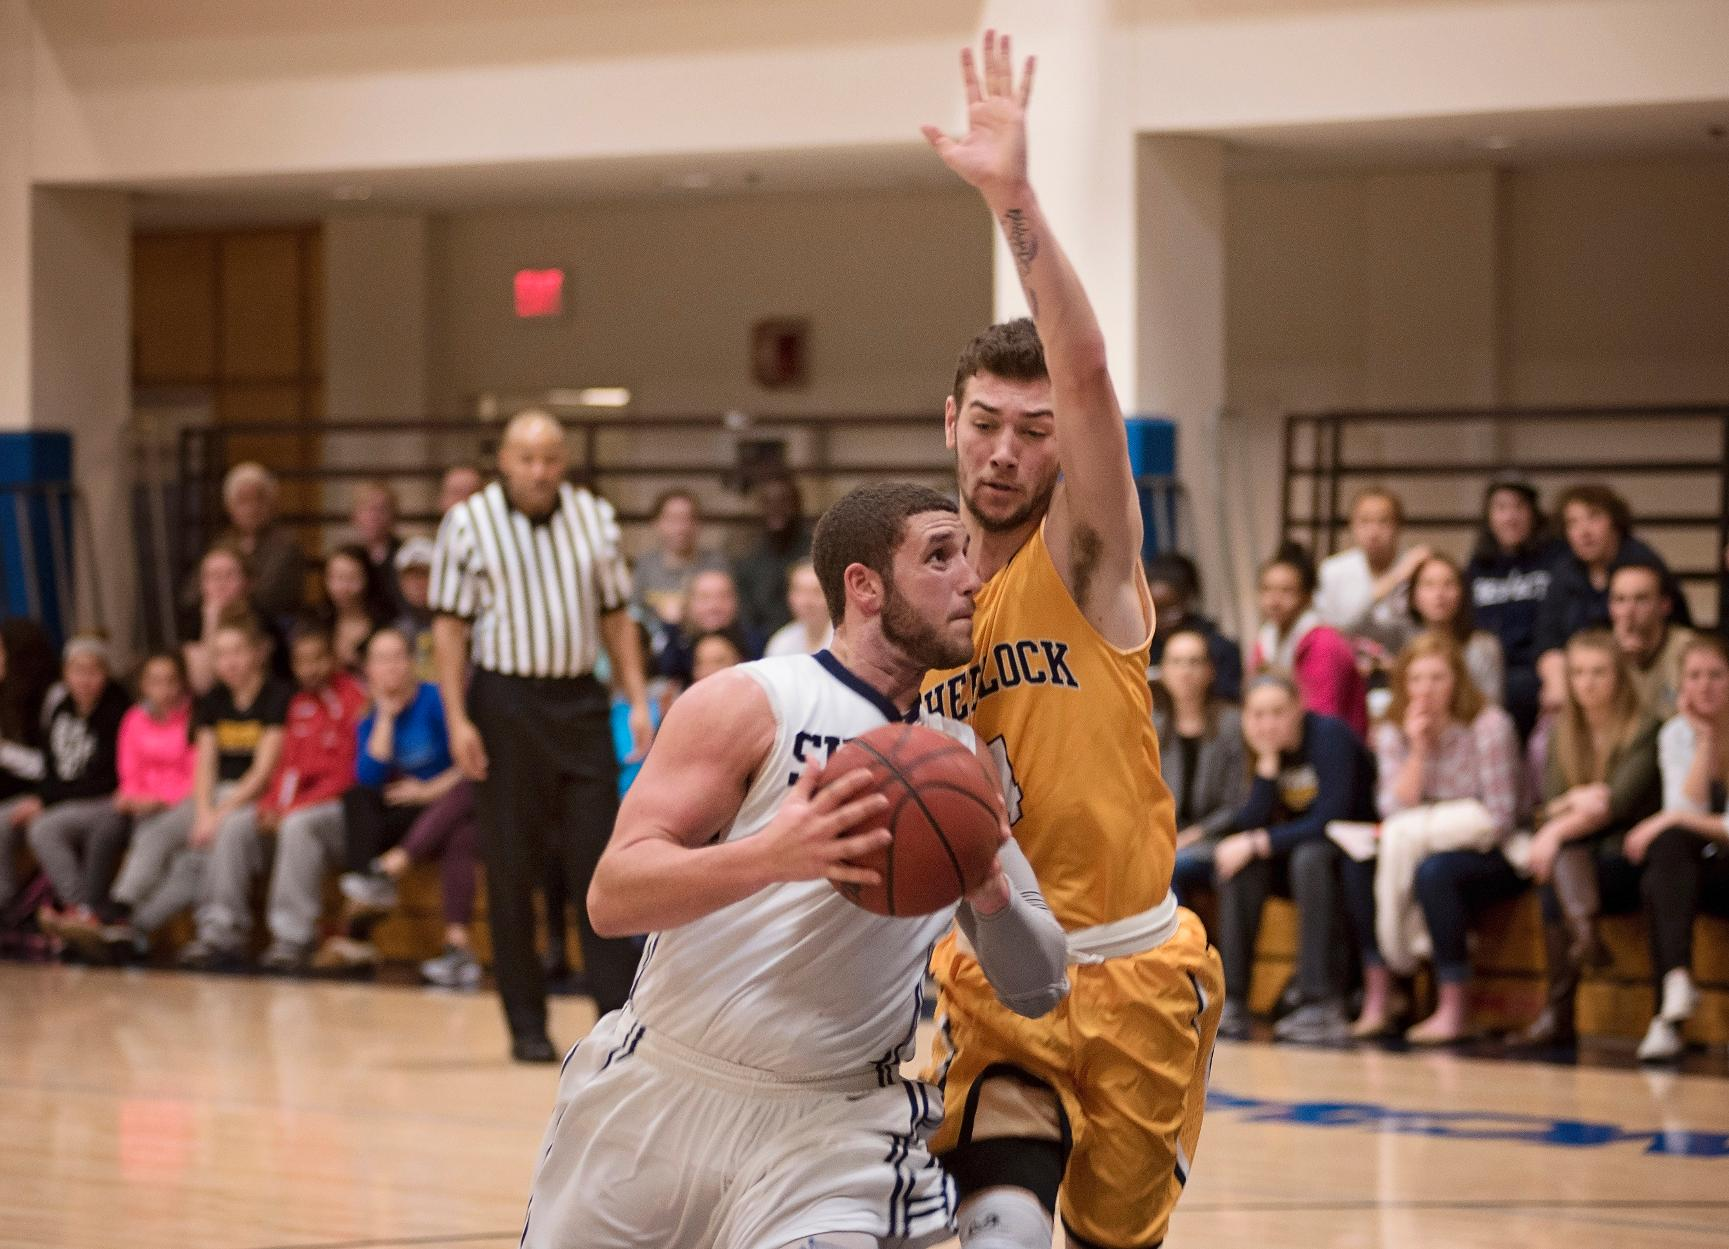 Chick Paces Men's Basketball in 58-53 Victory Over SJC